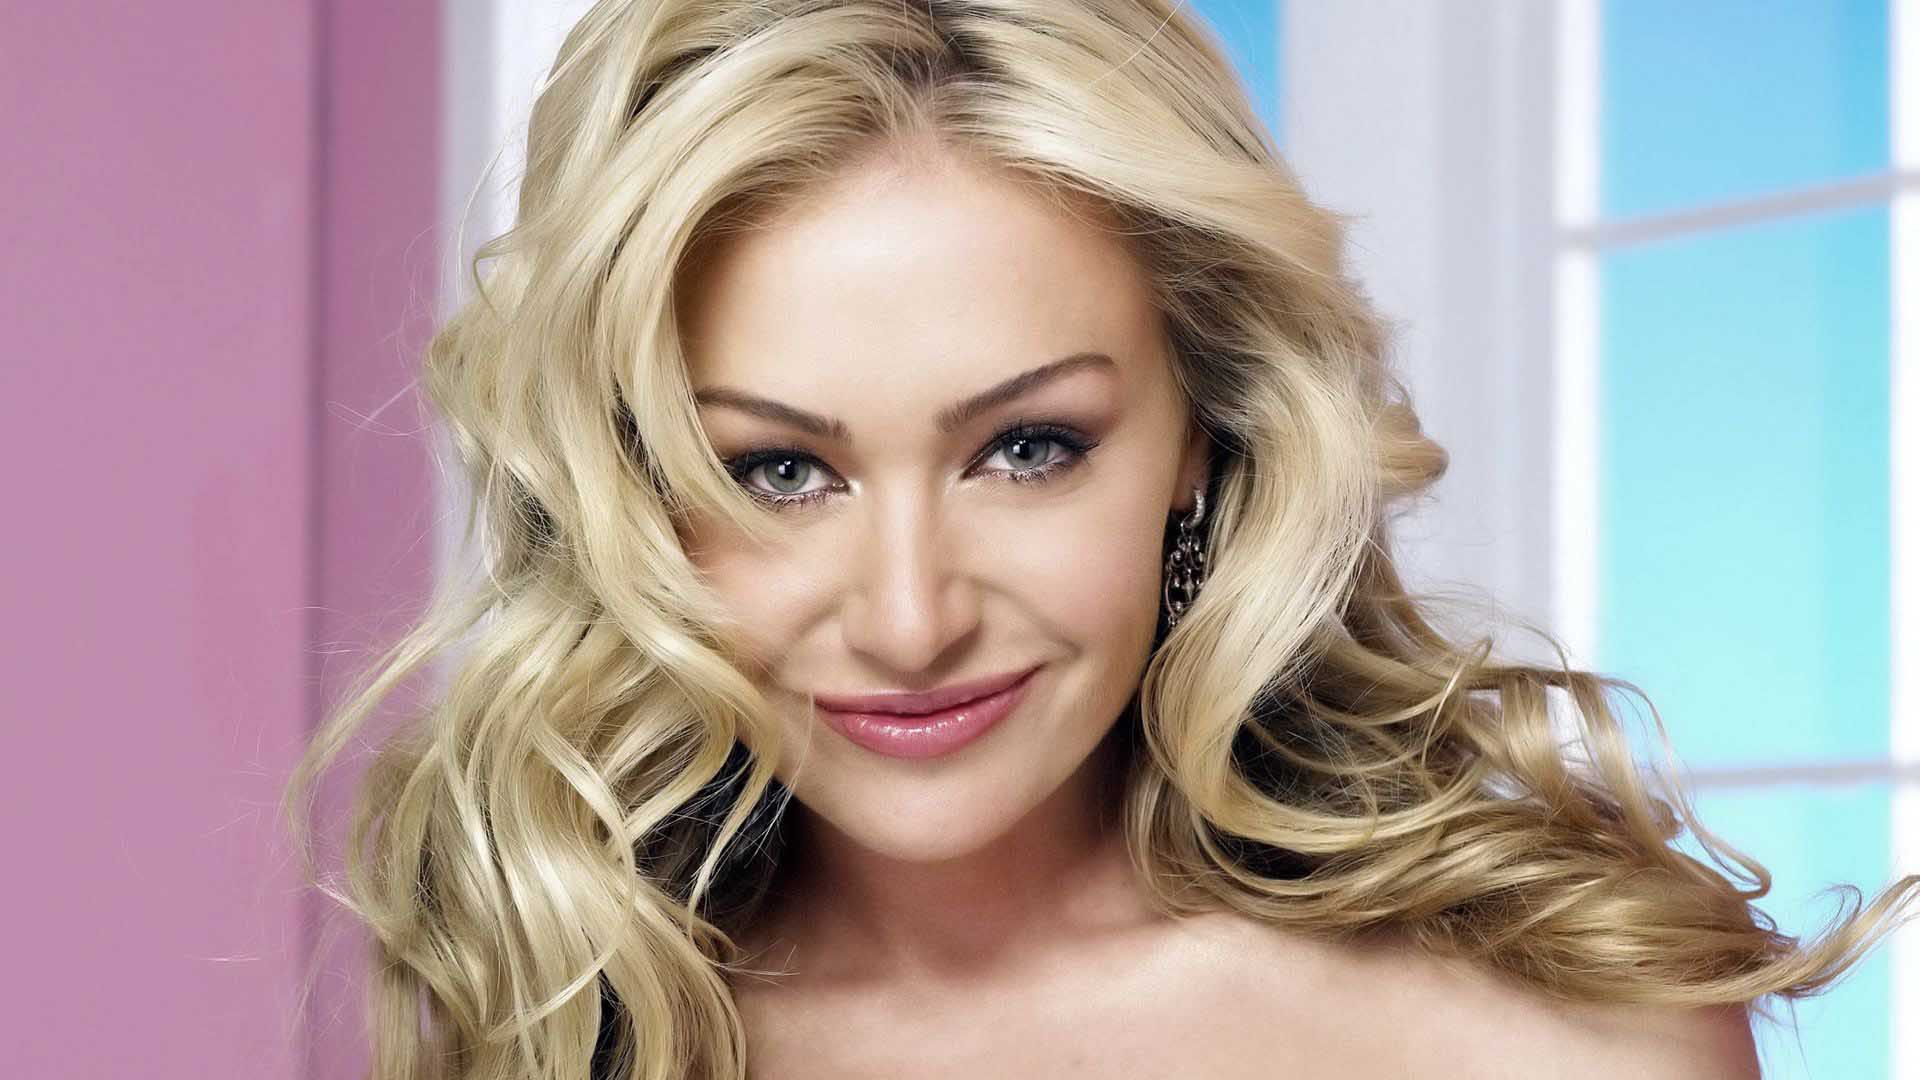 Portia Rossi Smile Face HD Wallpaper Wallpaper